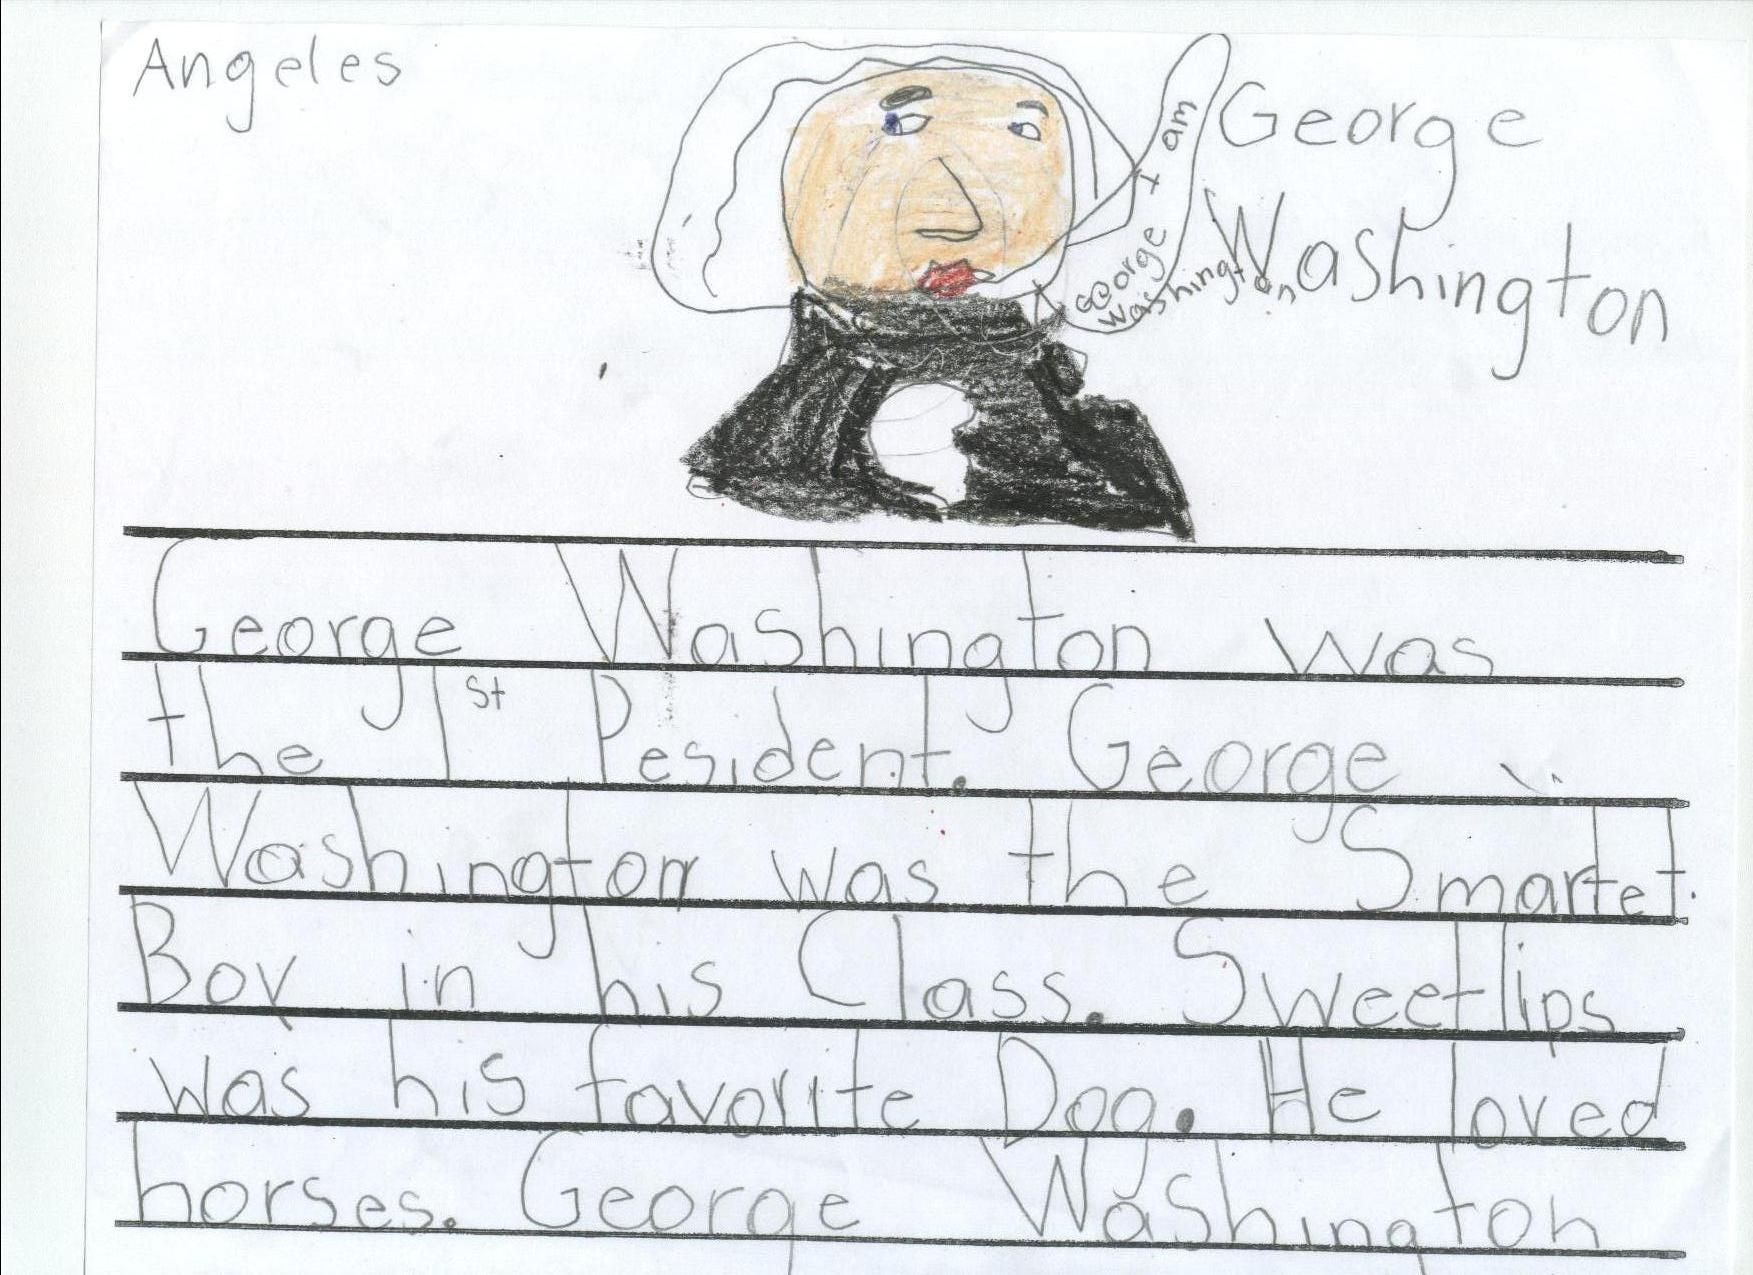 012 Essay Example George Washington Student Writing Impressive Prompt University Essays That Worked Junior Cert Full